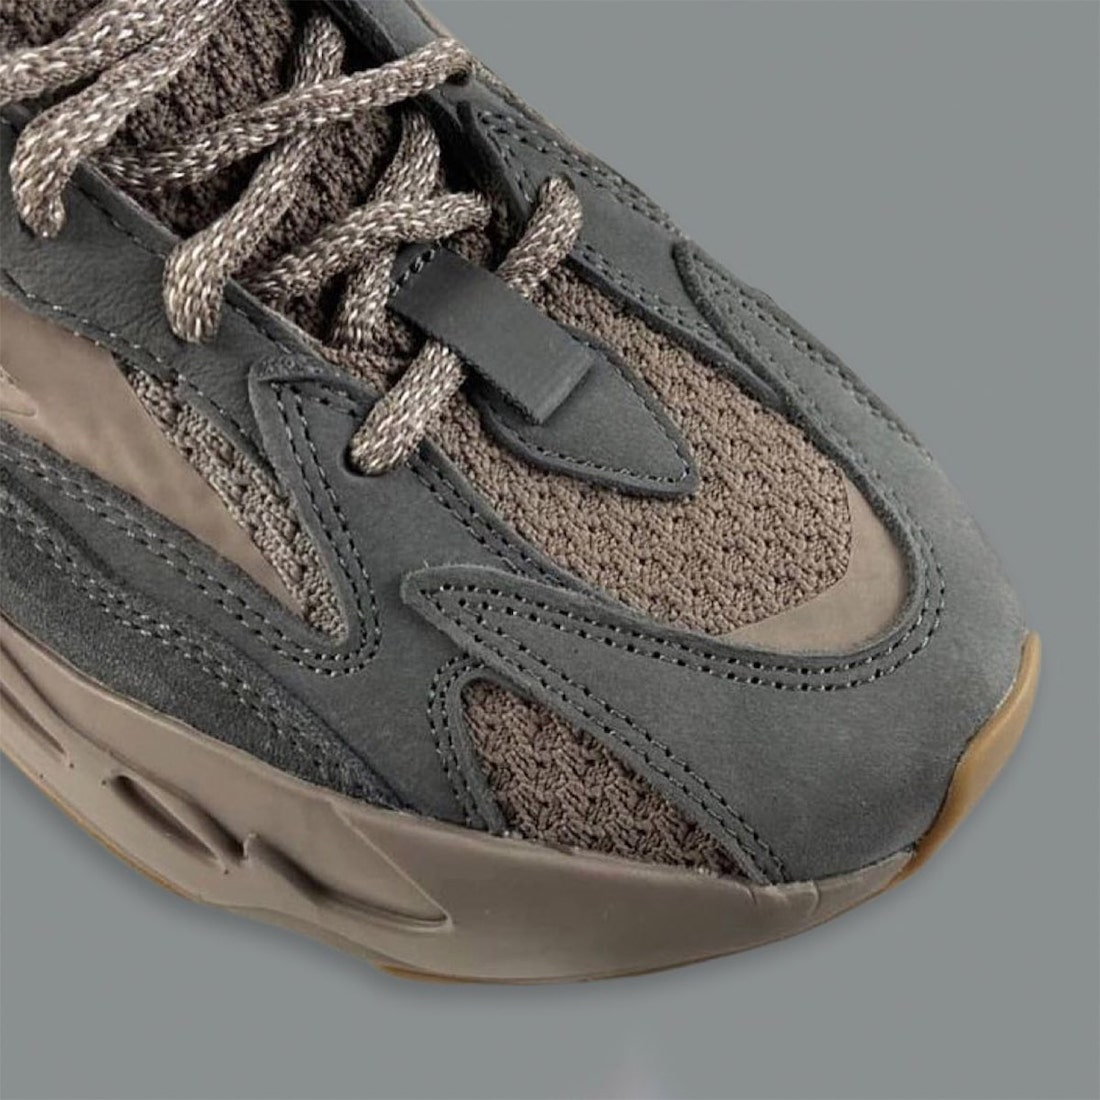 adidas yeezy boost 700 v2 mauve release info 2